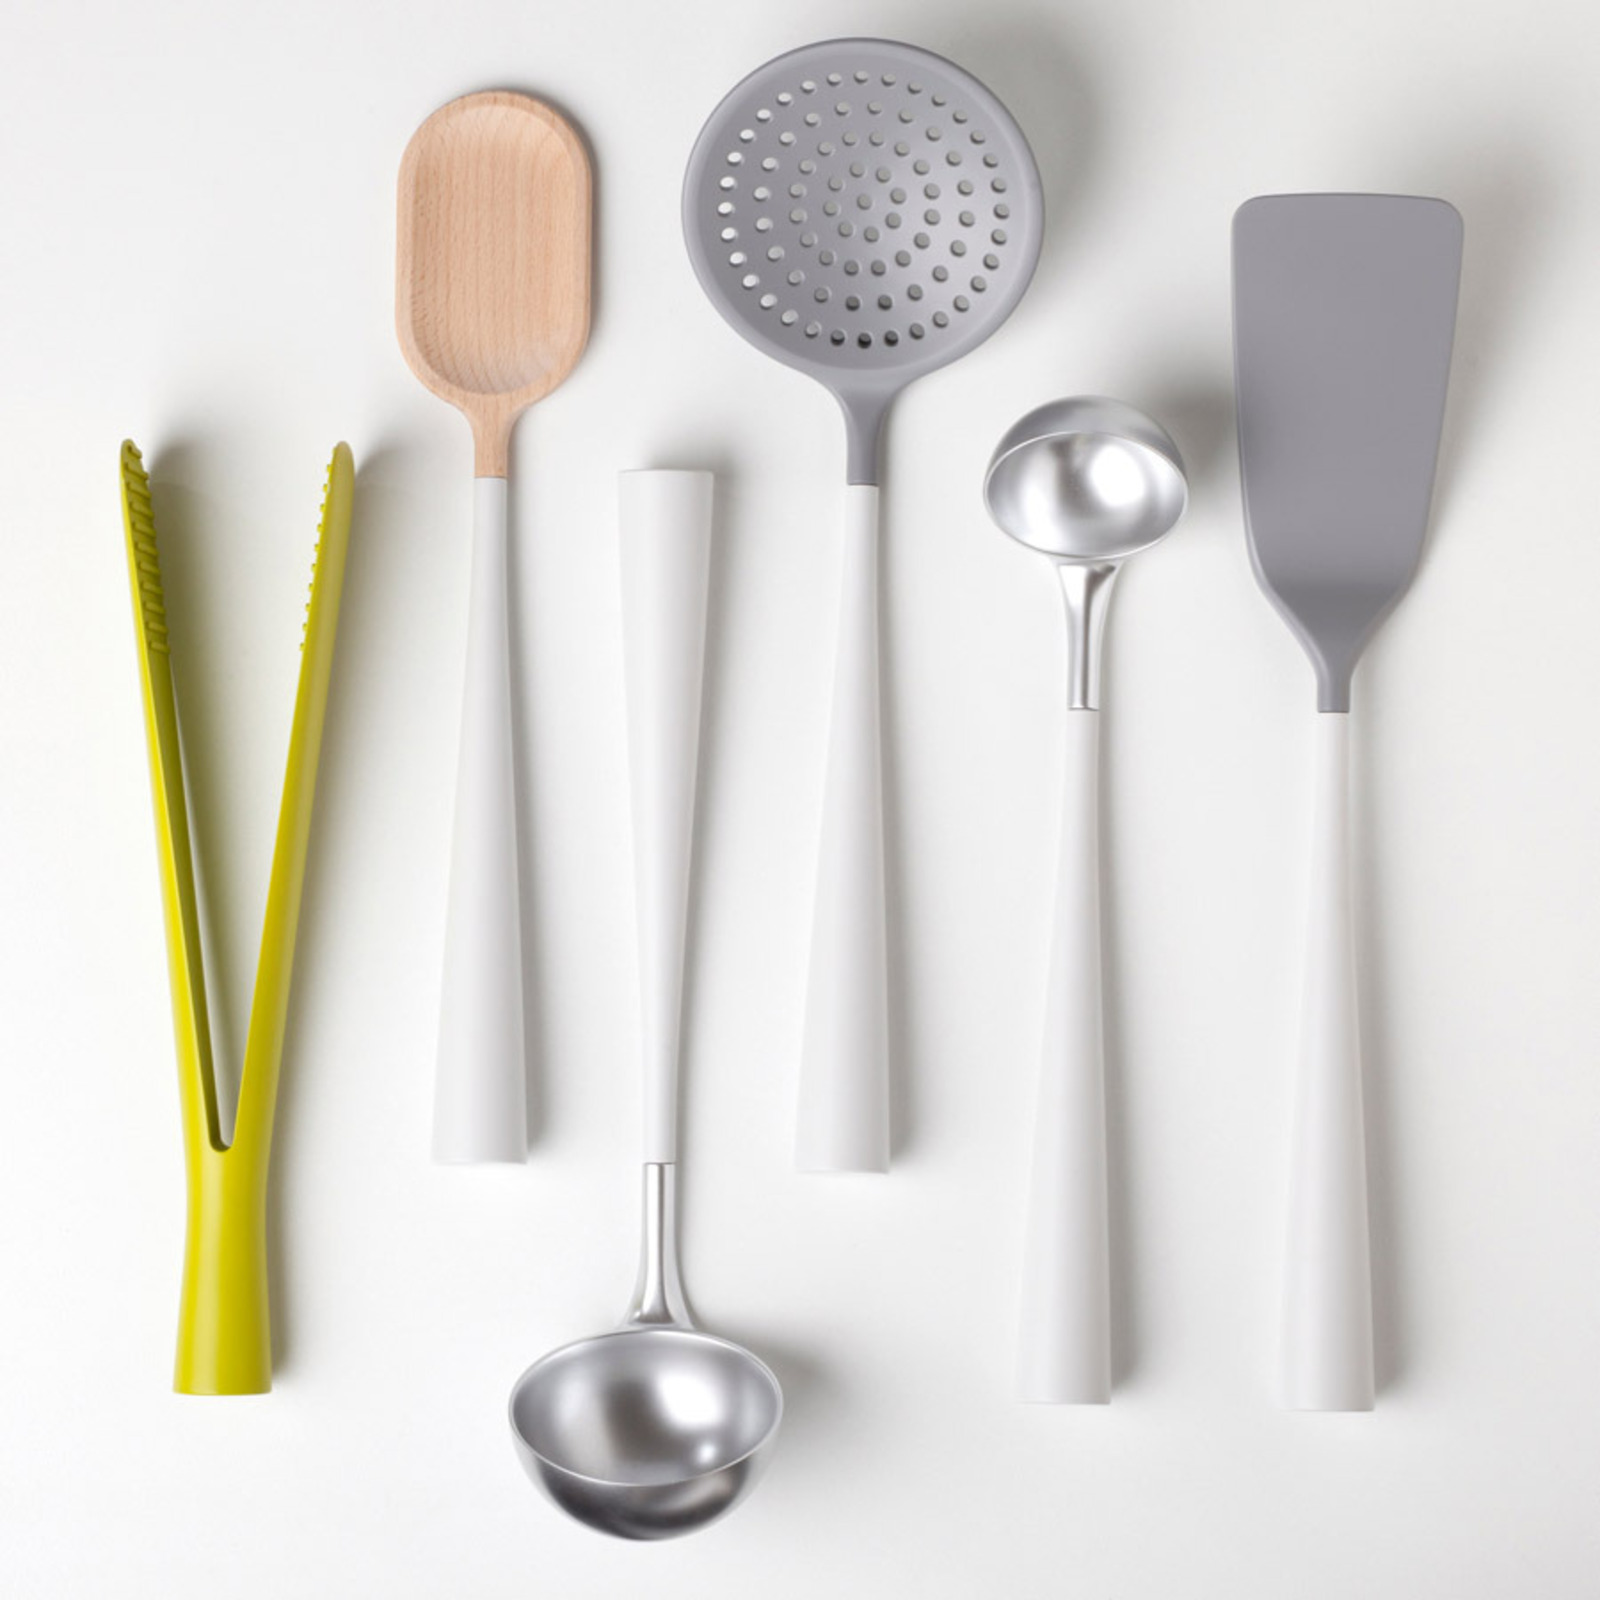 Restaurant Kitchen Utensils smool kitchen tools - cool hunting